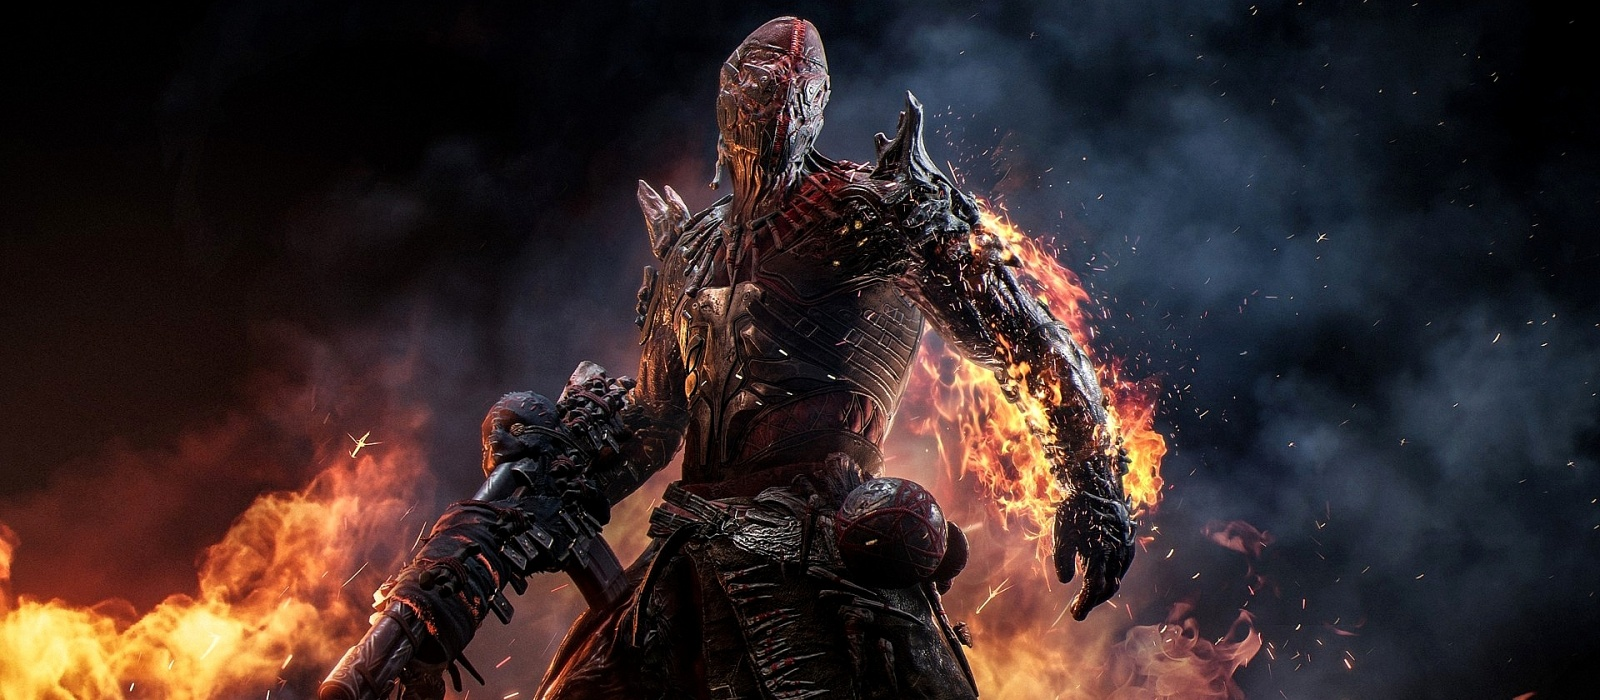 The best modifications and their combinations in Outriders for Technomancer, Pyromancer, Destroyer and Trickster